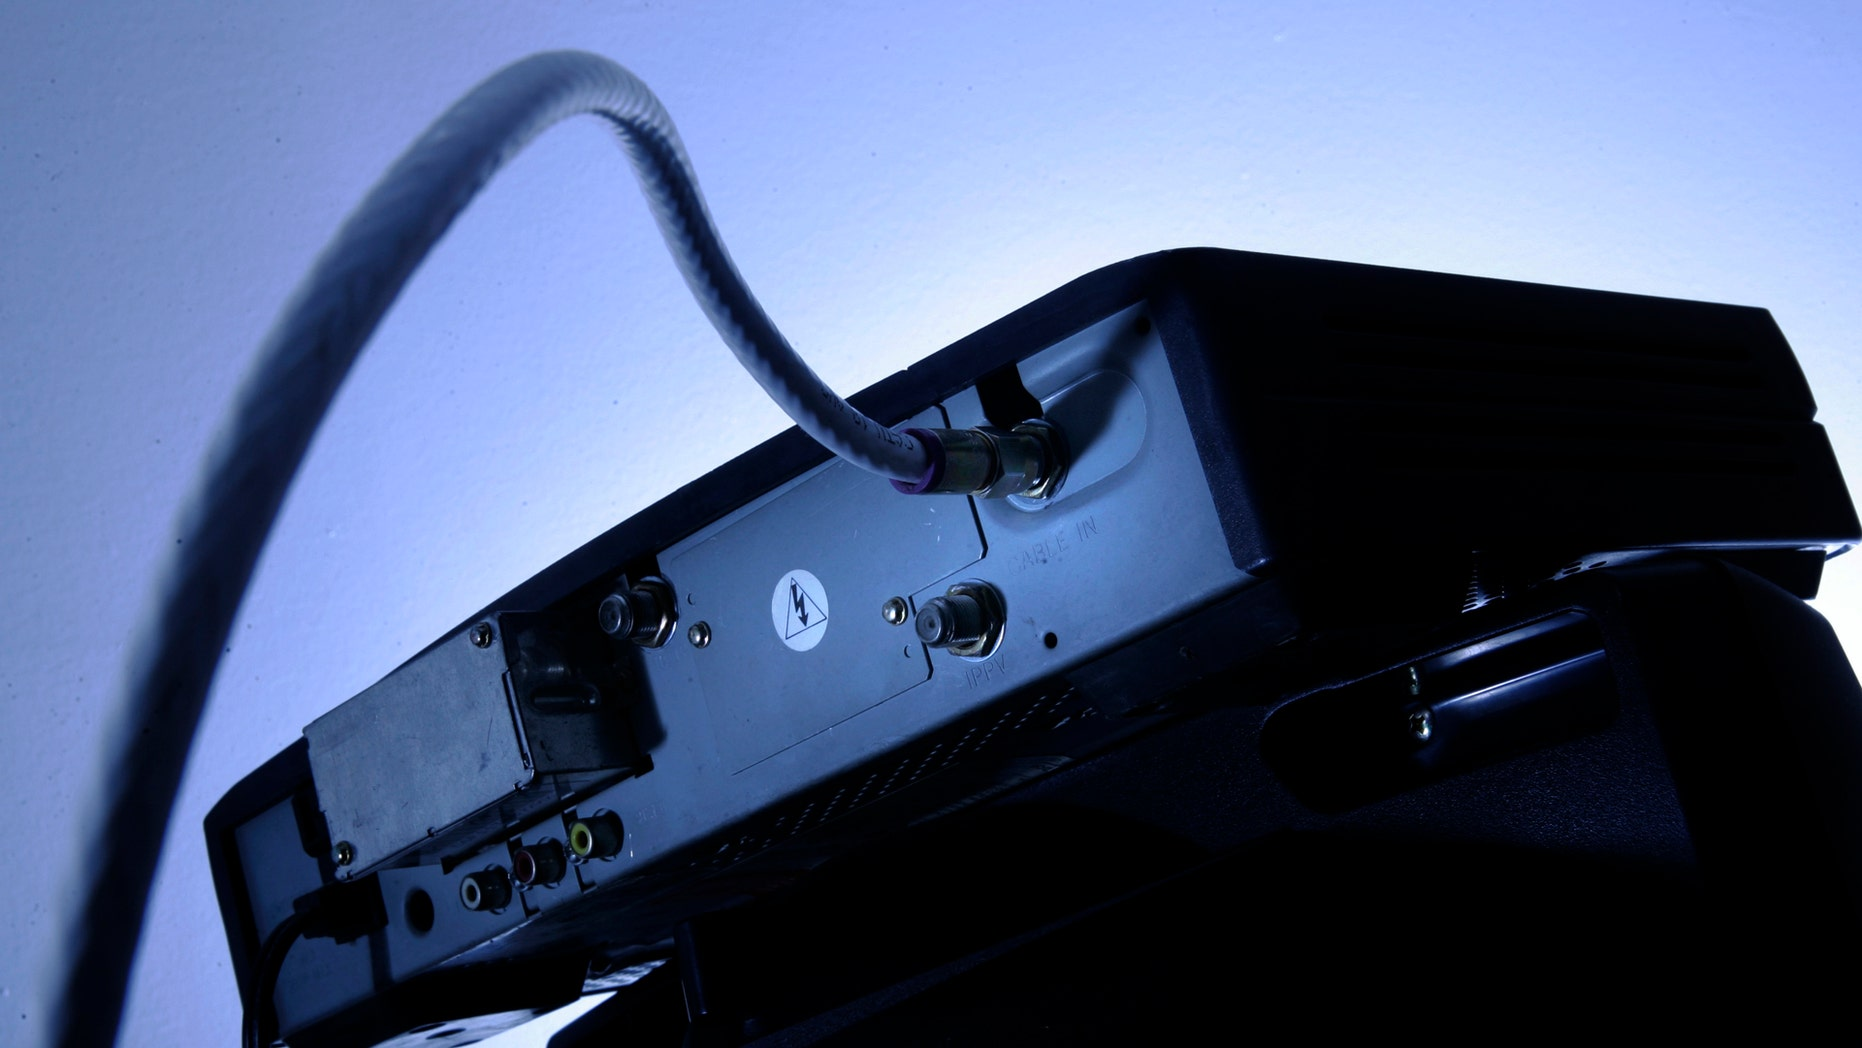 Admit it, you've thought about cutting the cord. (AP Photo/Matt Rourke, File)